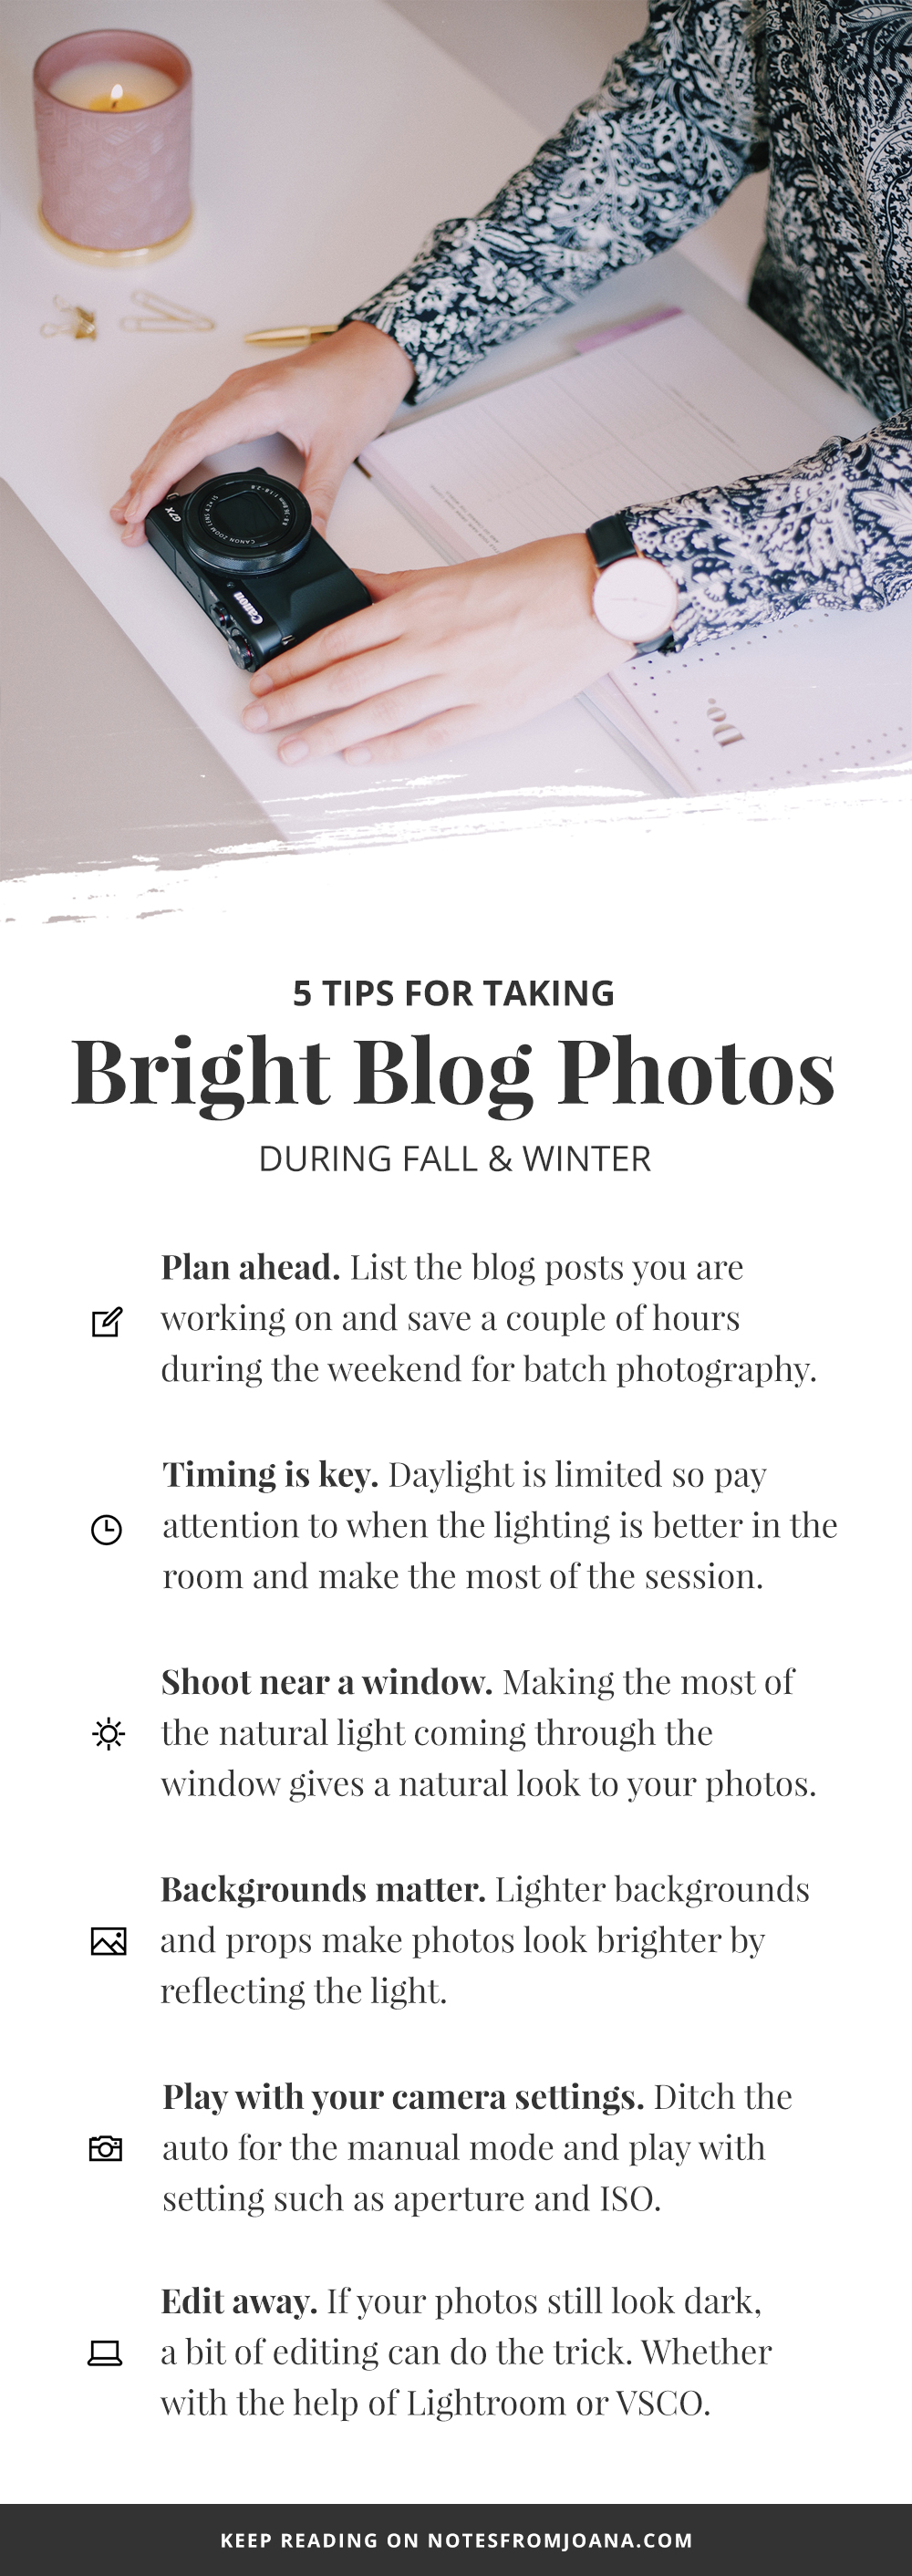 7 Tips For Taking Bright Photos In Fall & Winter // Struggling to take bright photos during Fall & Winter? Here are 7 tips for bright lifestyle blog photography! // Notes from Joana